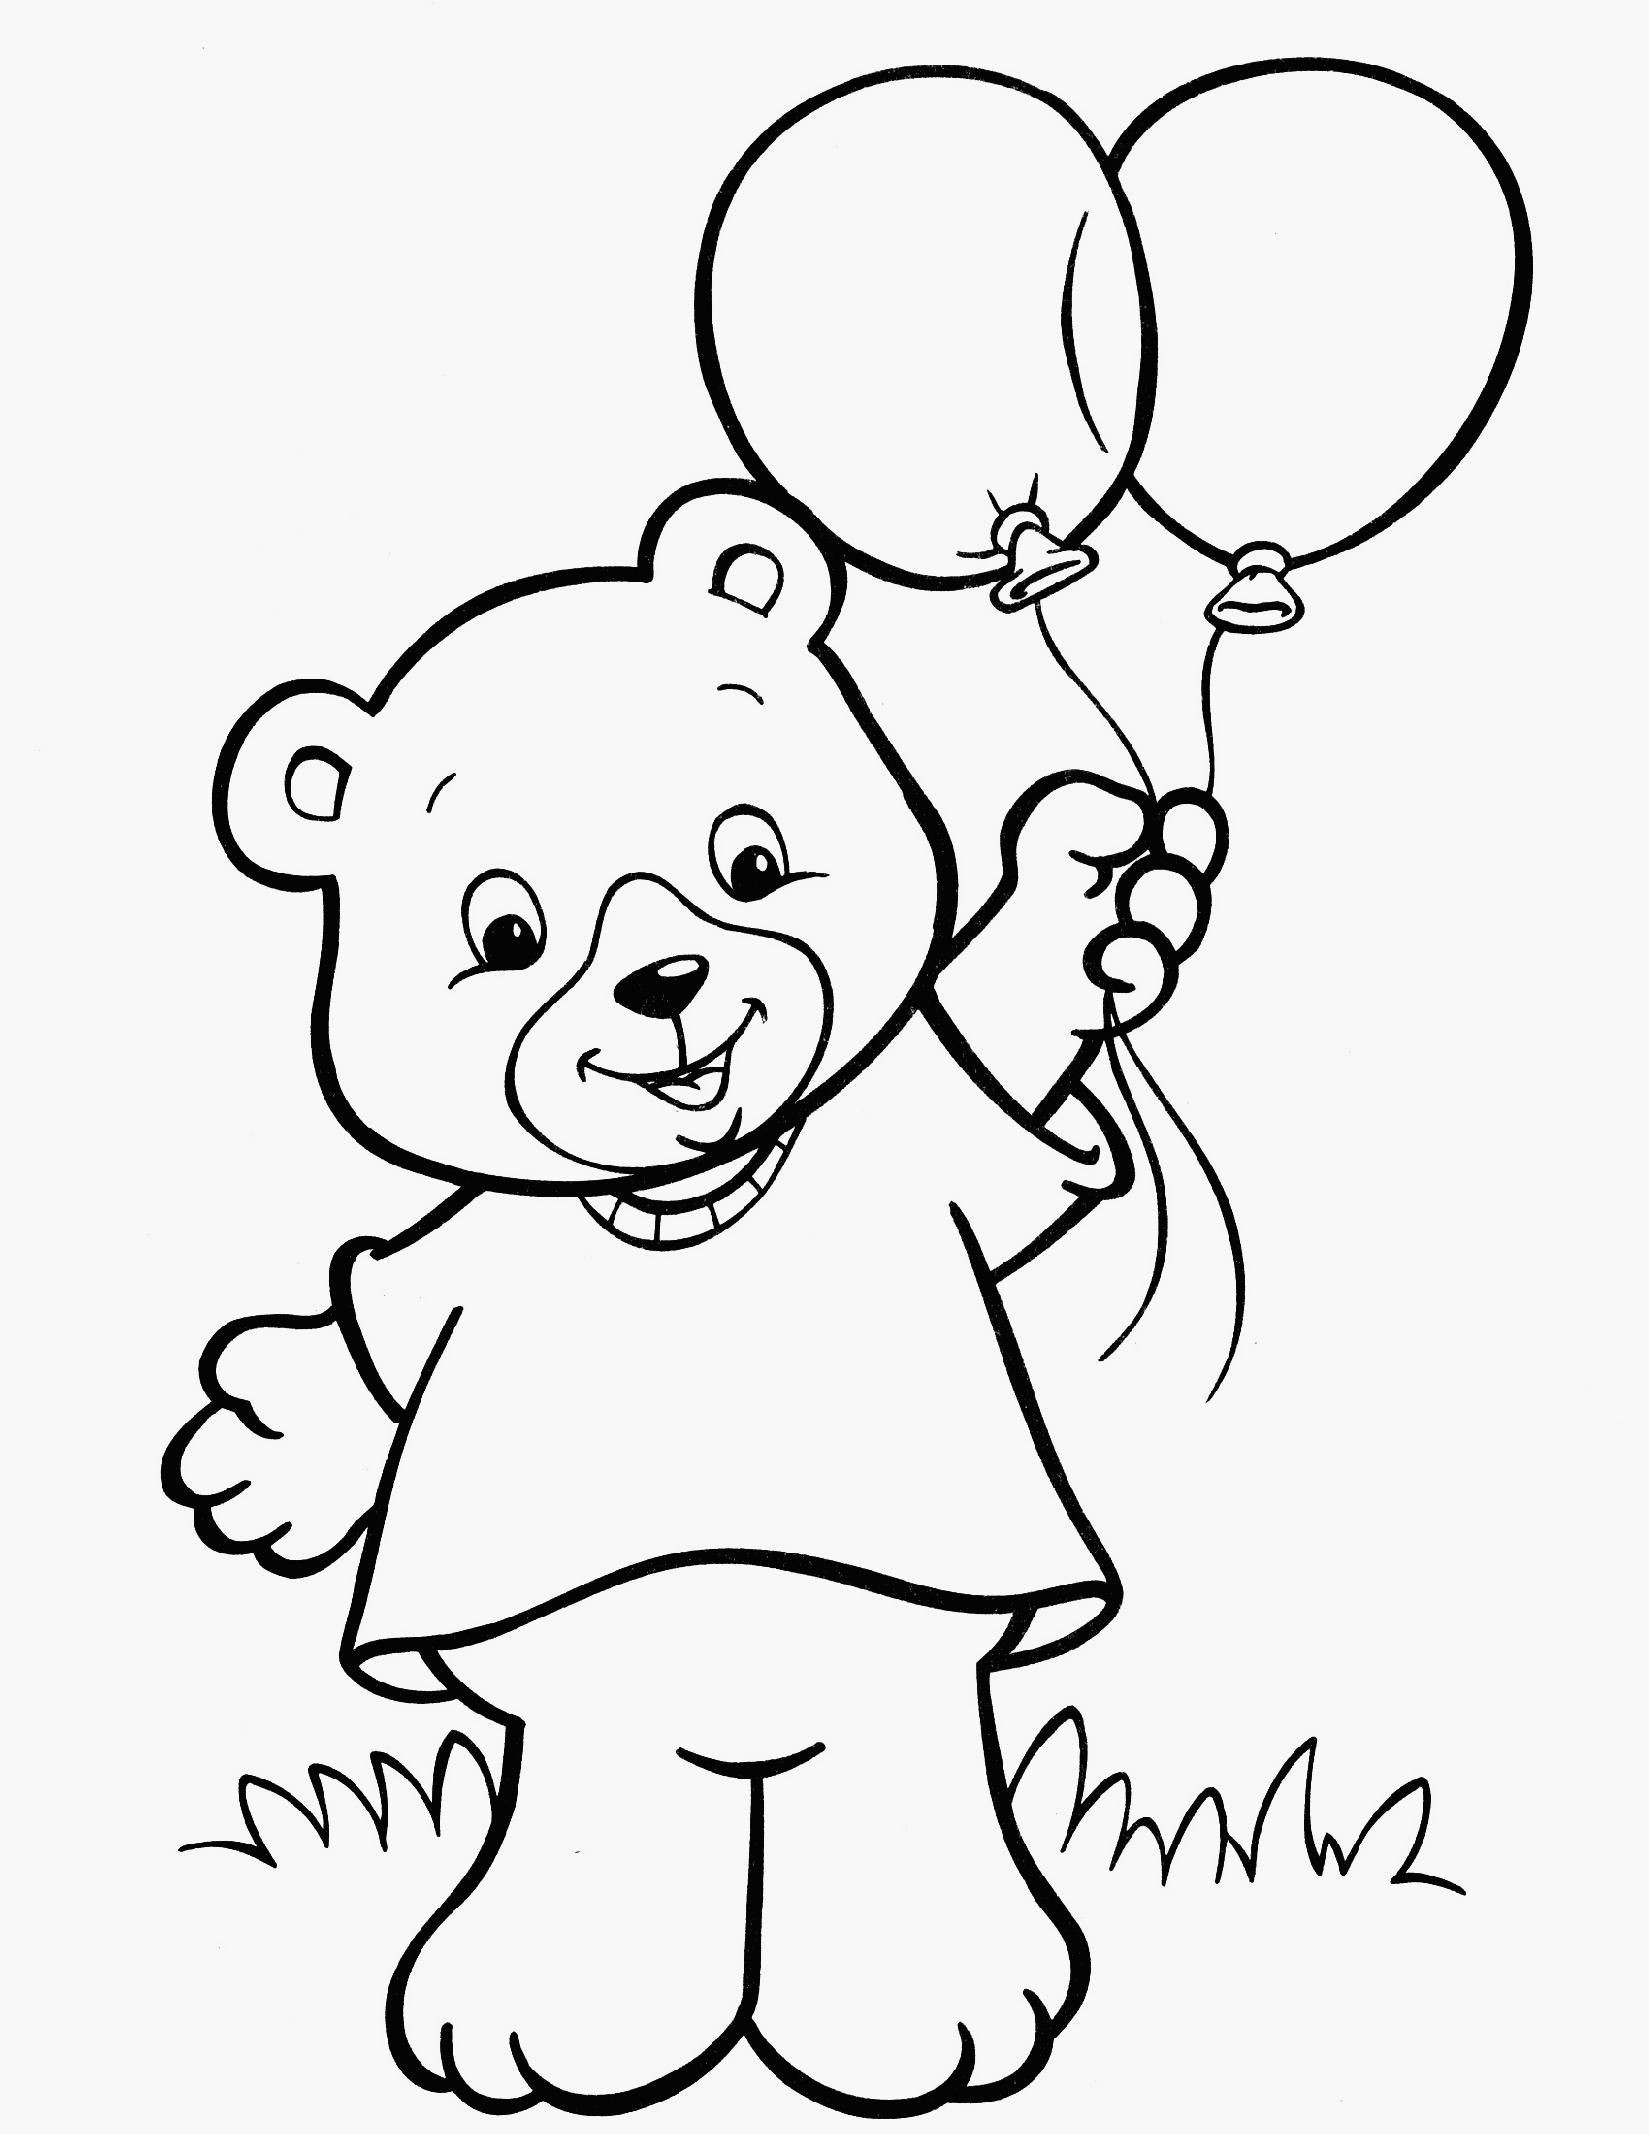 Coloring Pages For 4 Year Olds  Free Coloring Pages For 3 Year Olds Coloring Home